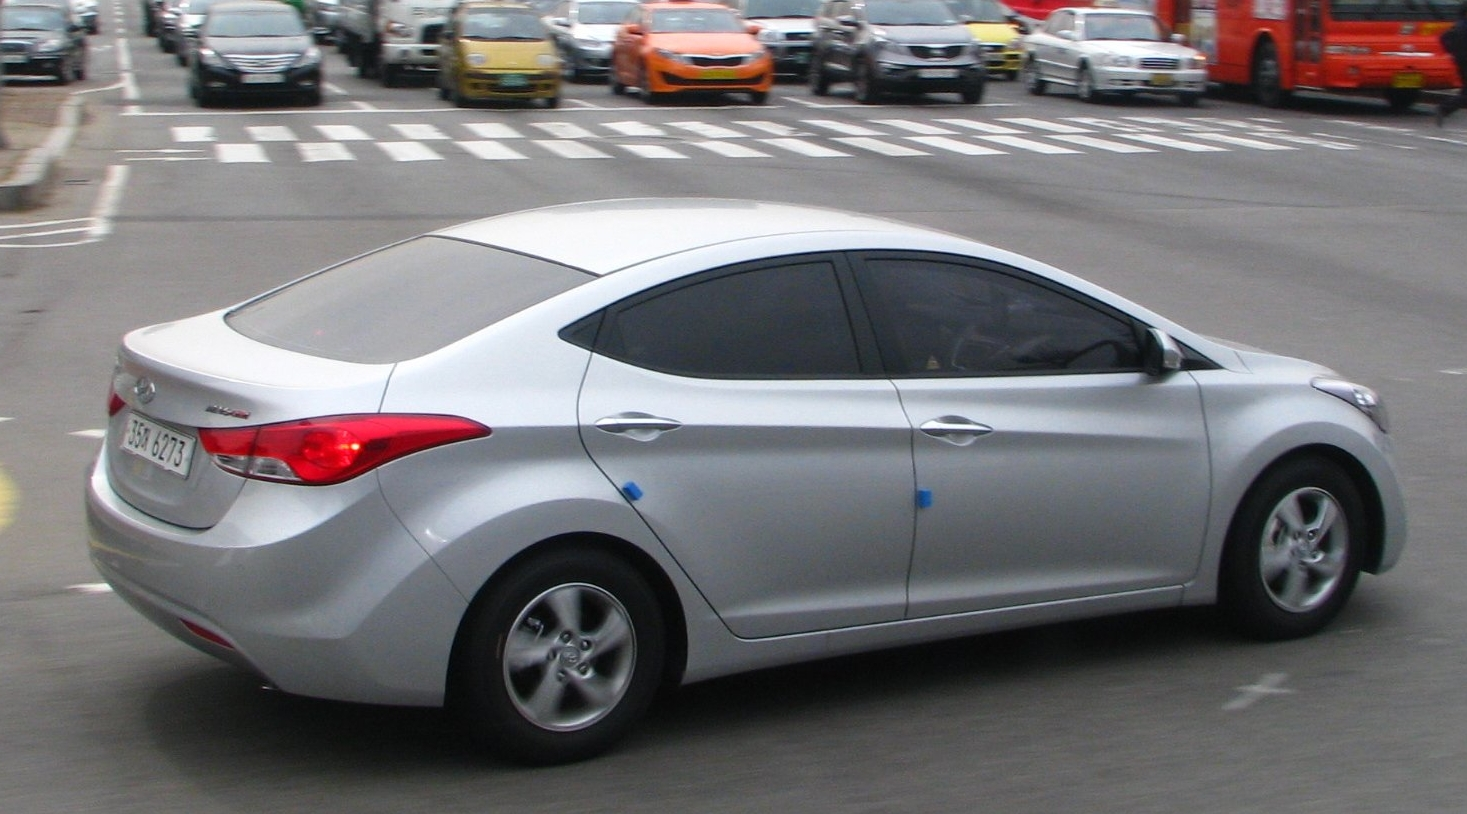 Hyundai Elantra To Be Launched By February Next Year